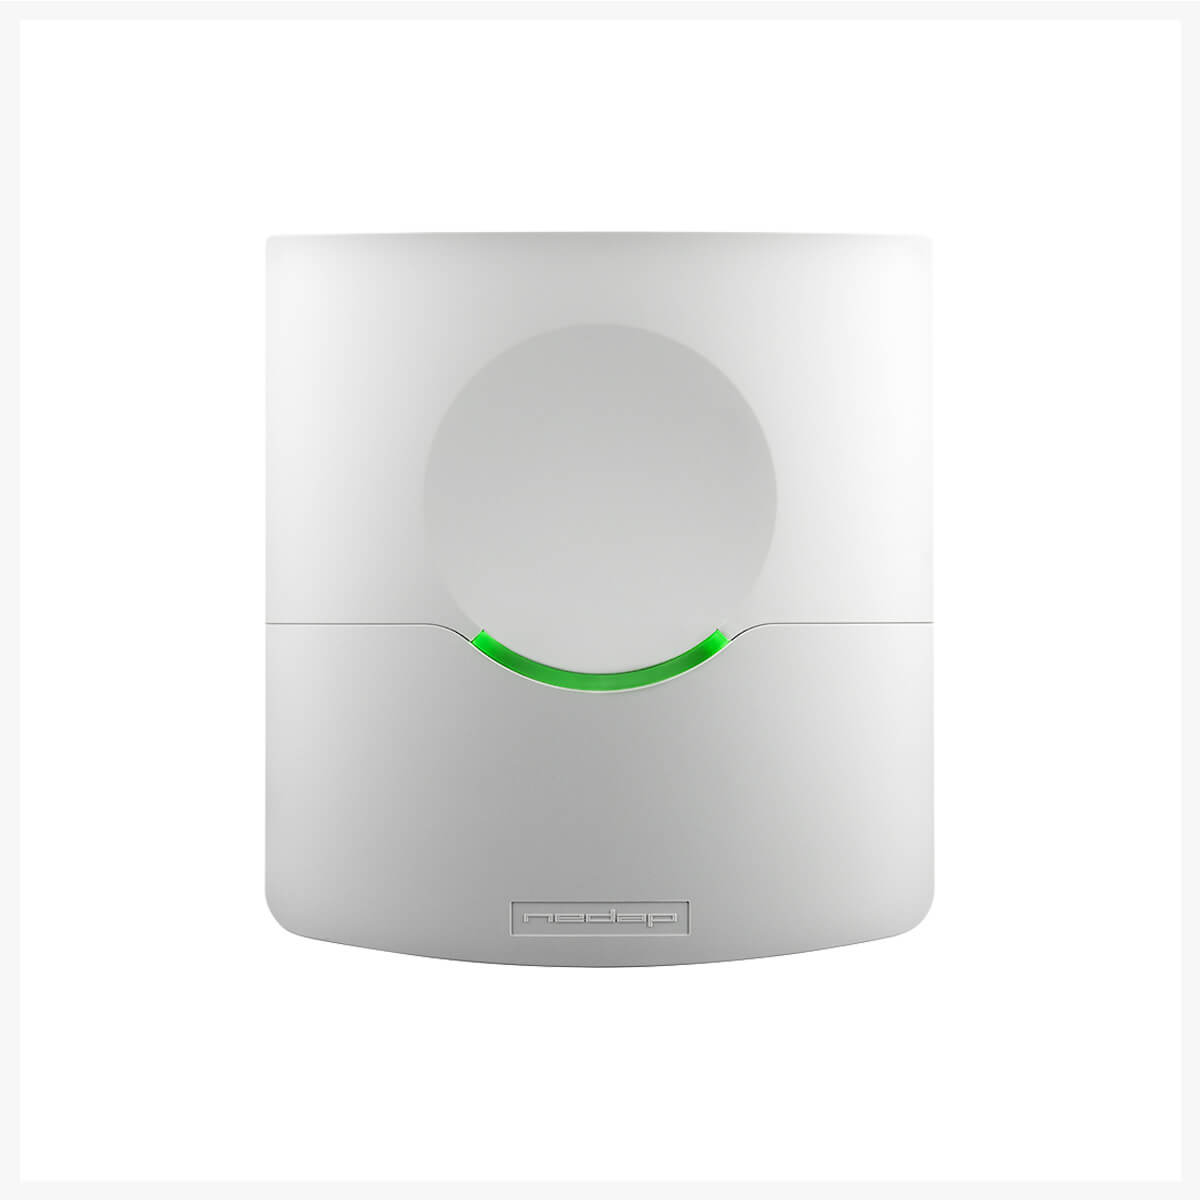 Nedap Long-range UHF Reader - uPASS Reach